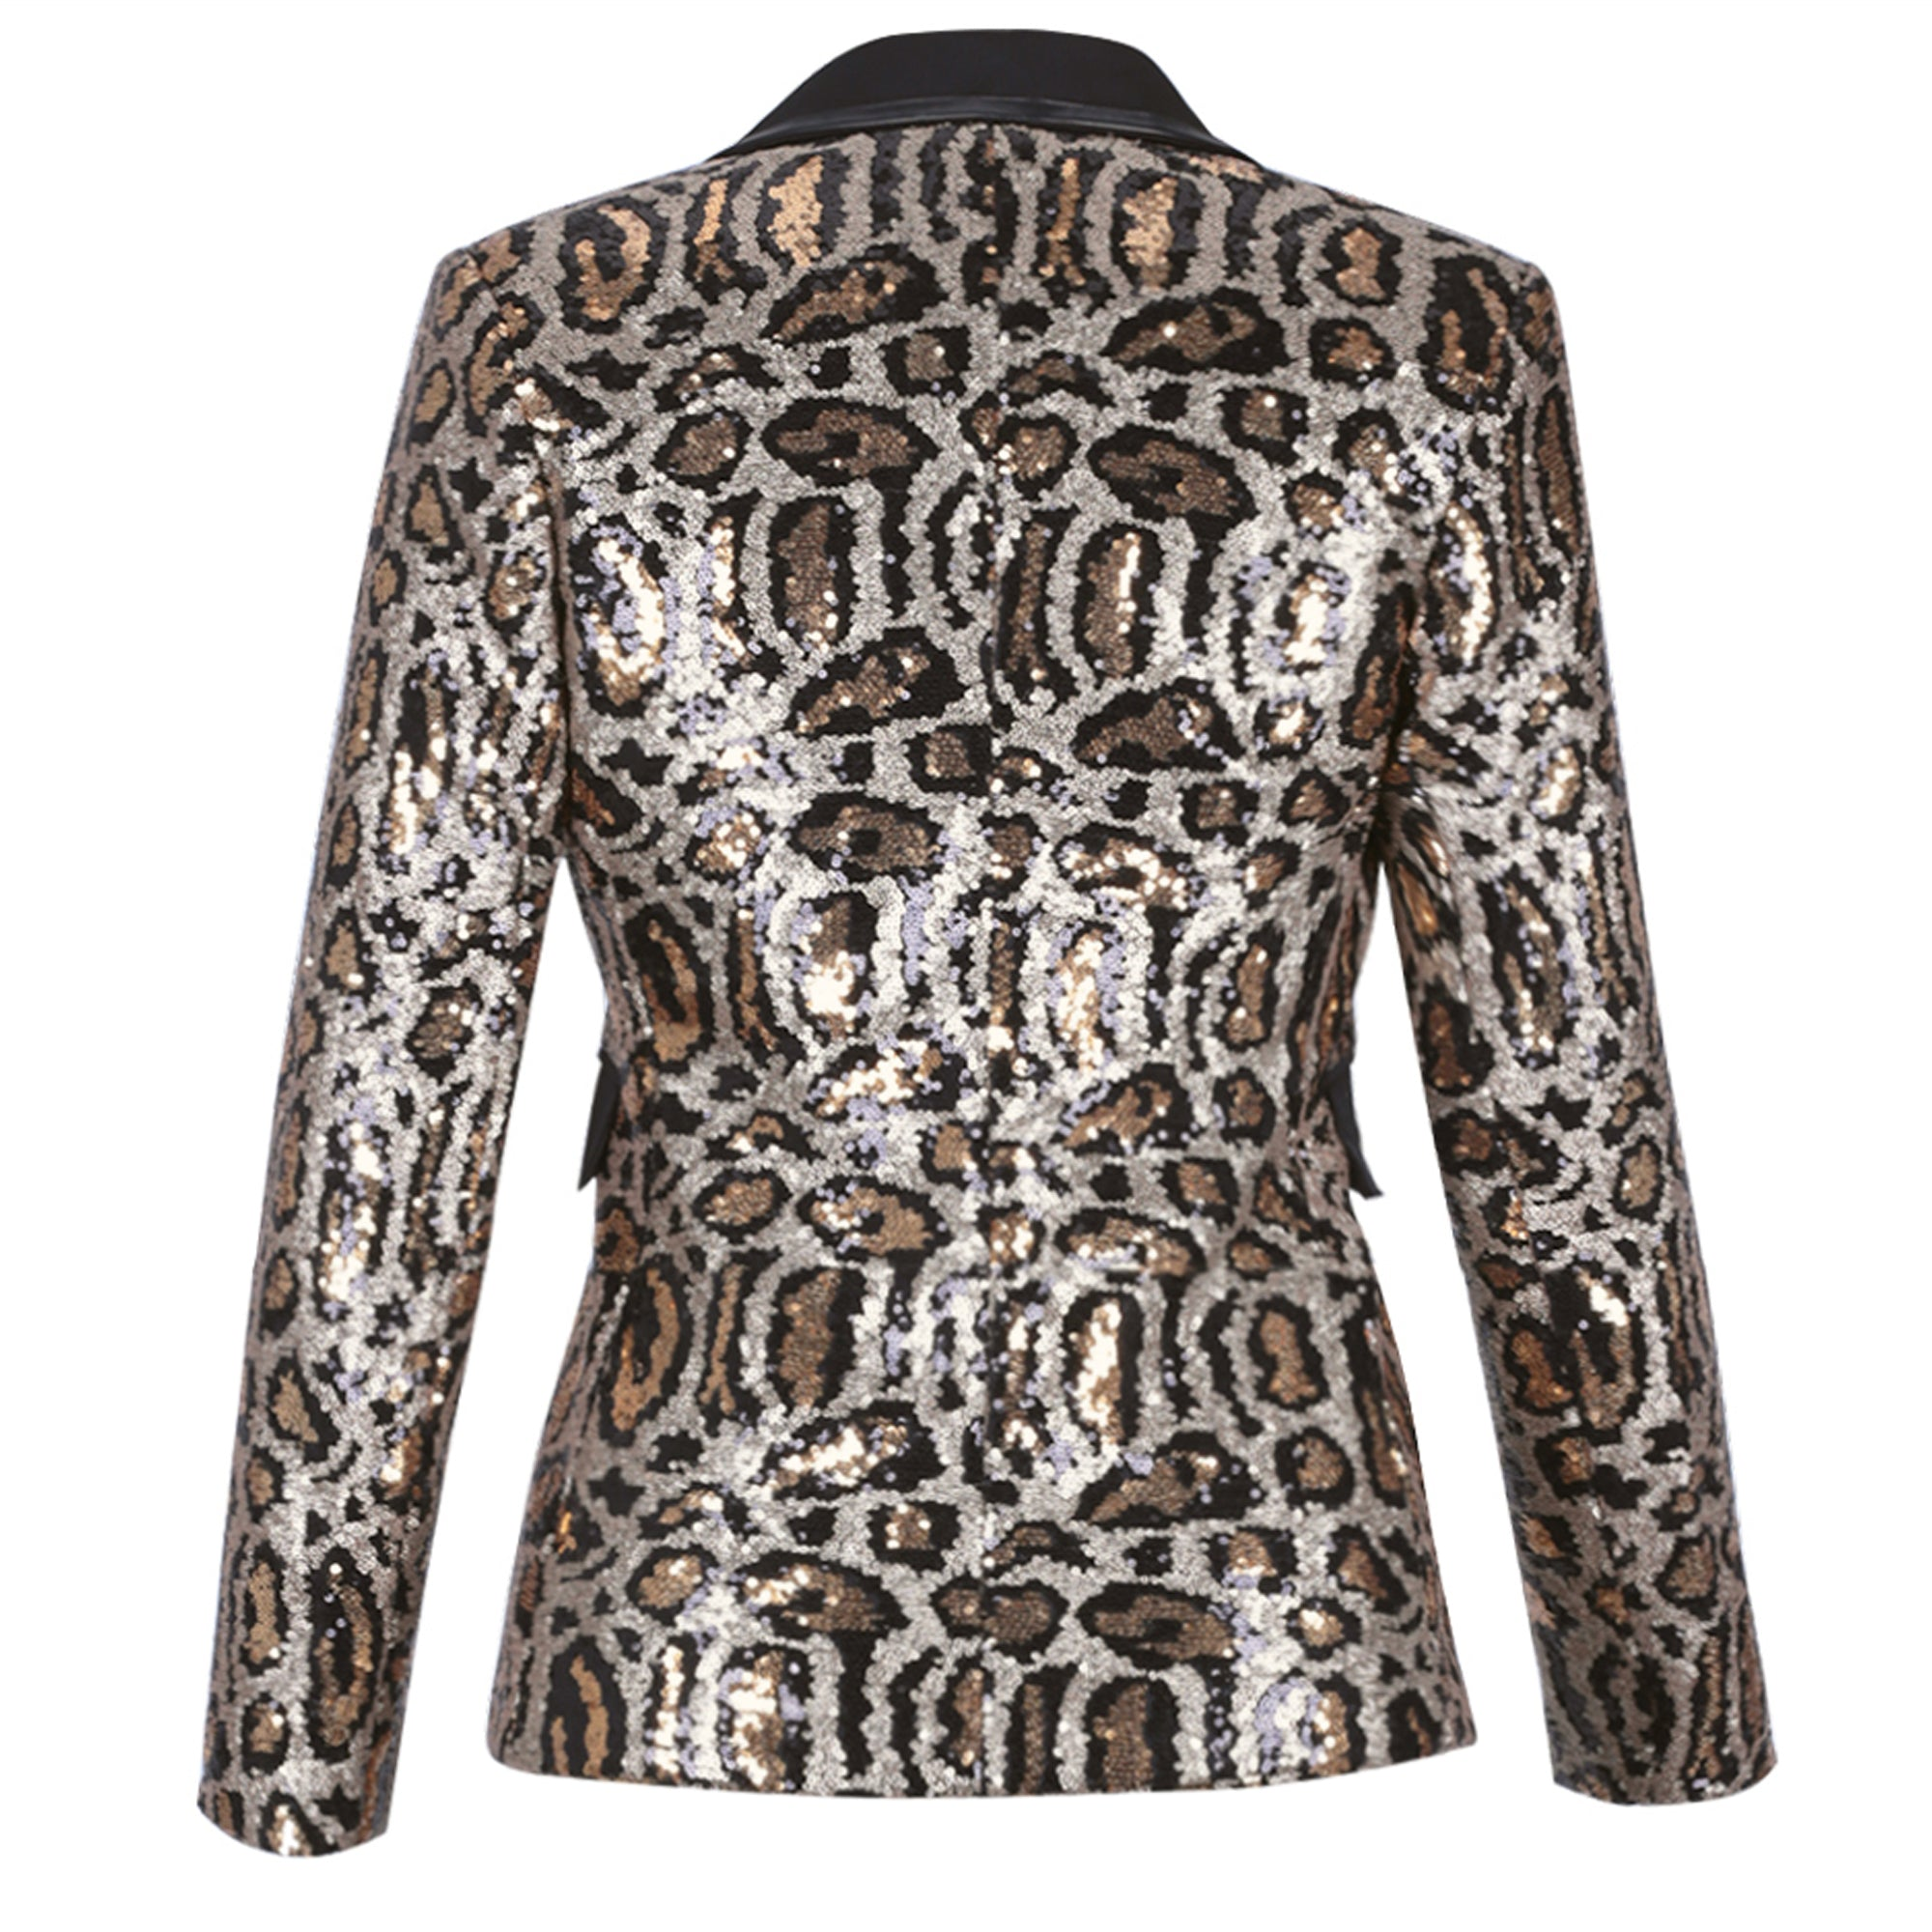 "Exclusive "" Get It Done"" Stunning Sequined Leopard Designed Blazer + Matching Slack Pant"